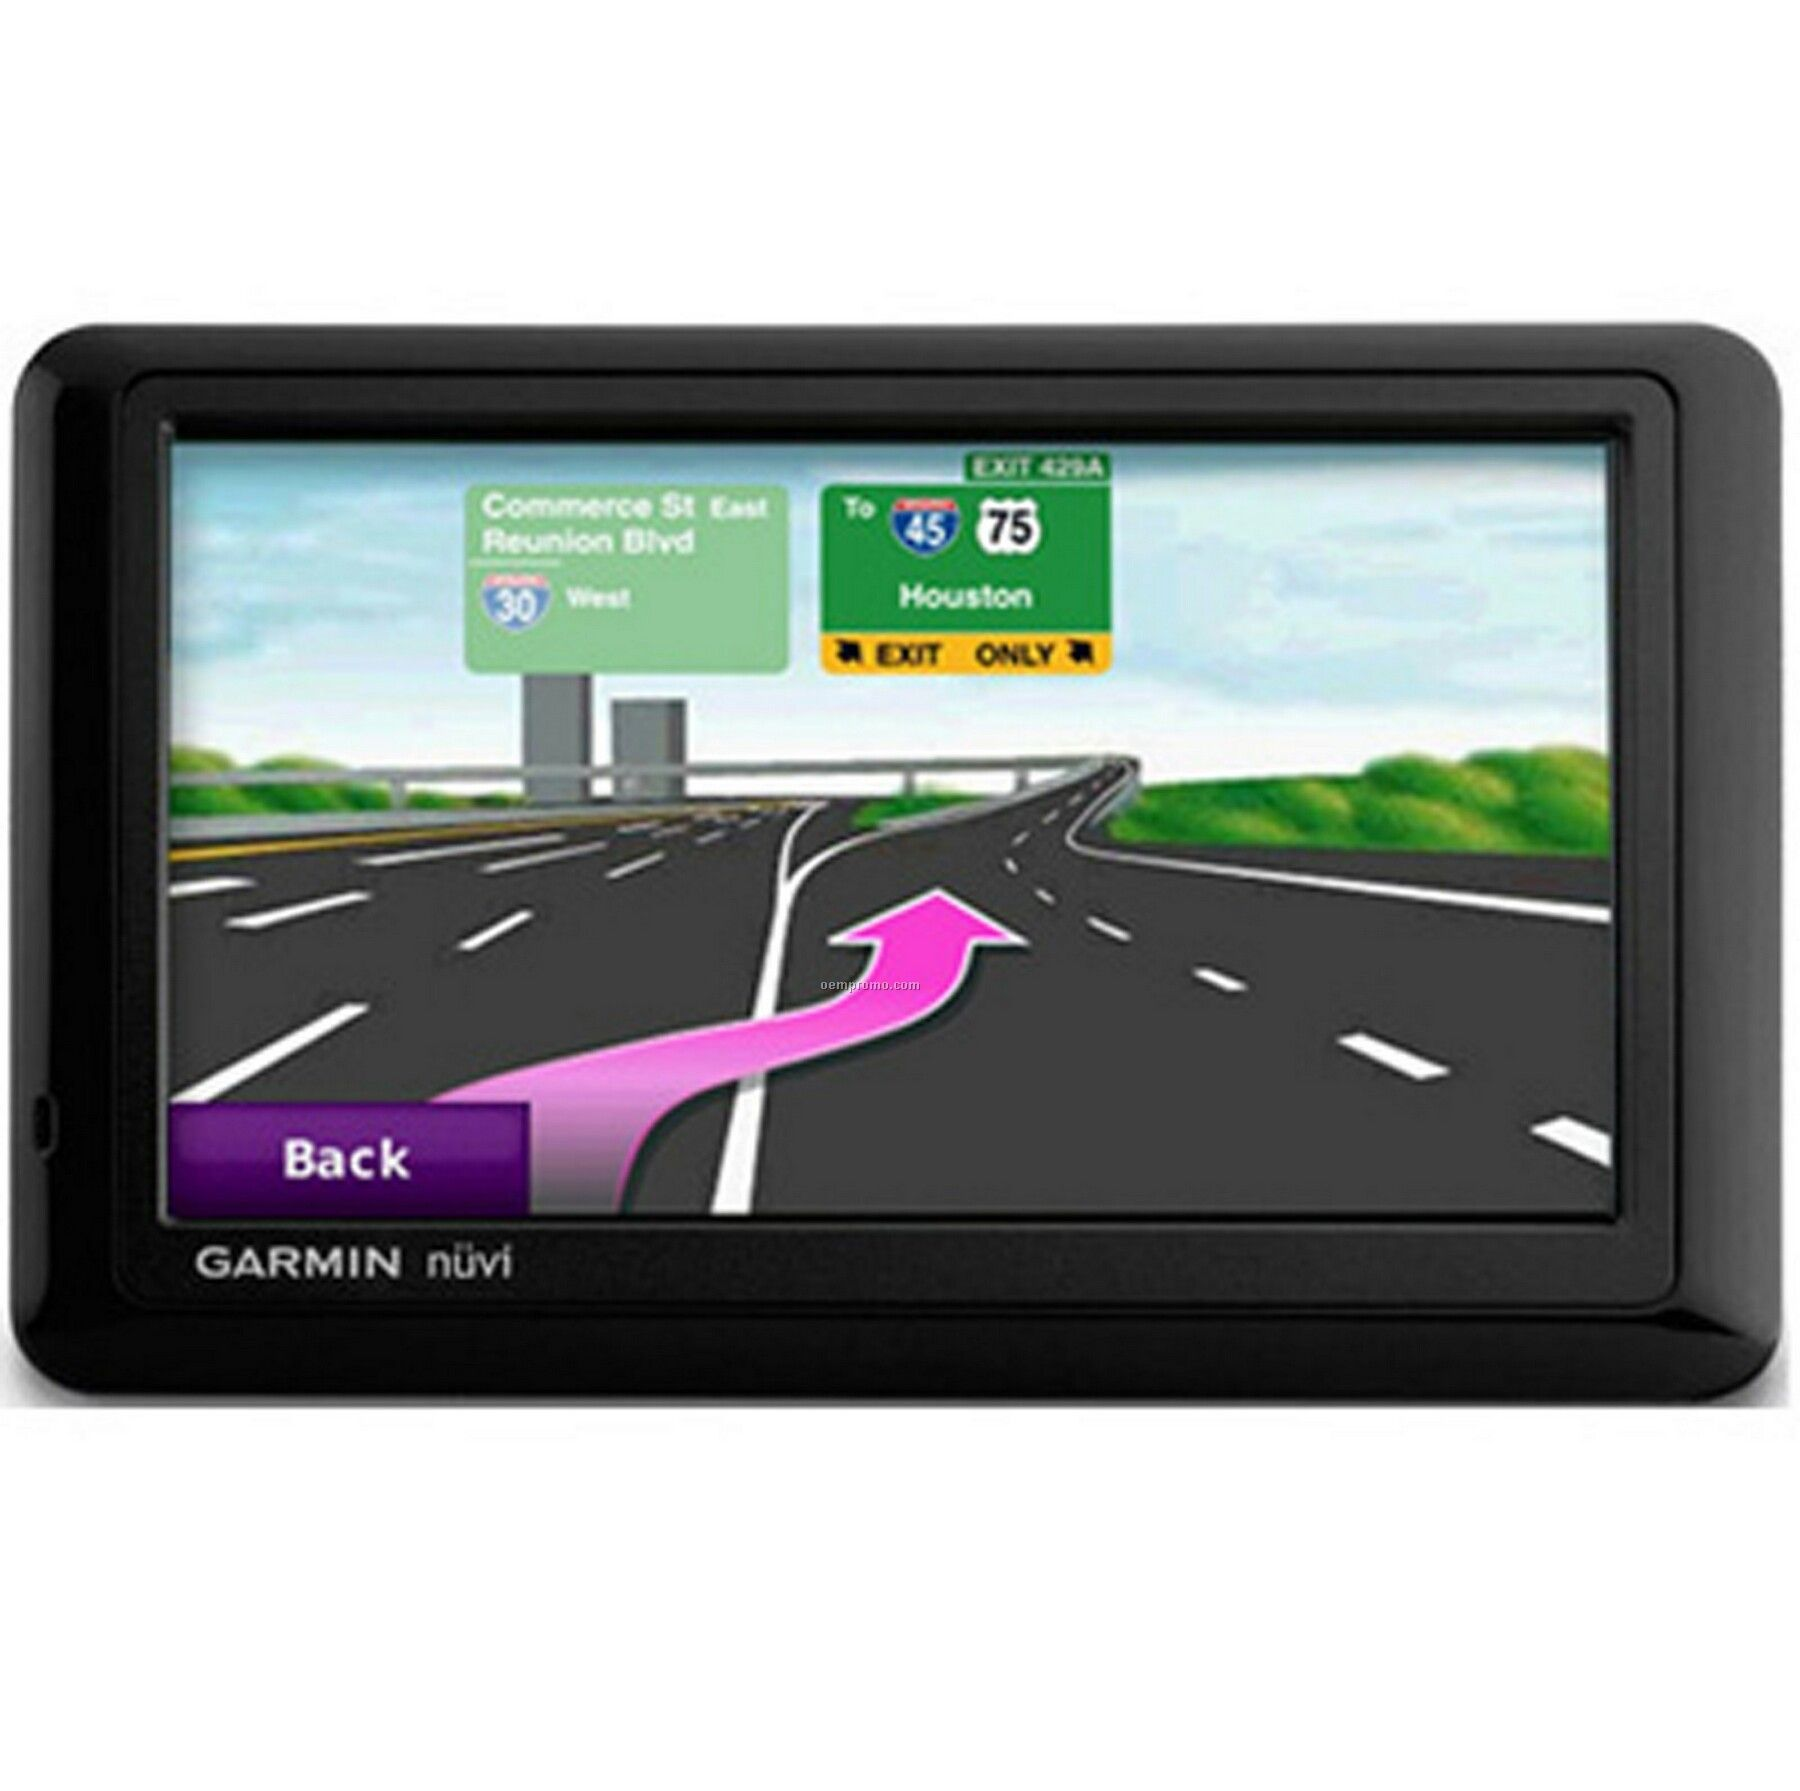 Garmin Nuvi 1490t Gps Vehicle Navigation System Bluetooth Enabled